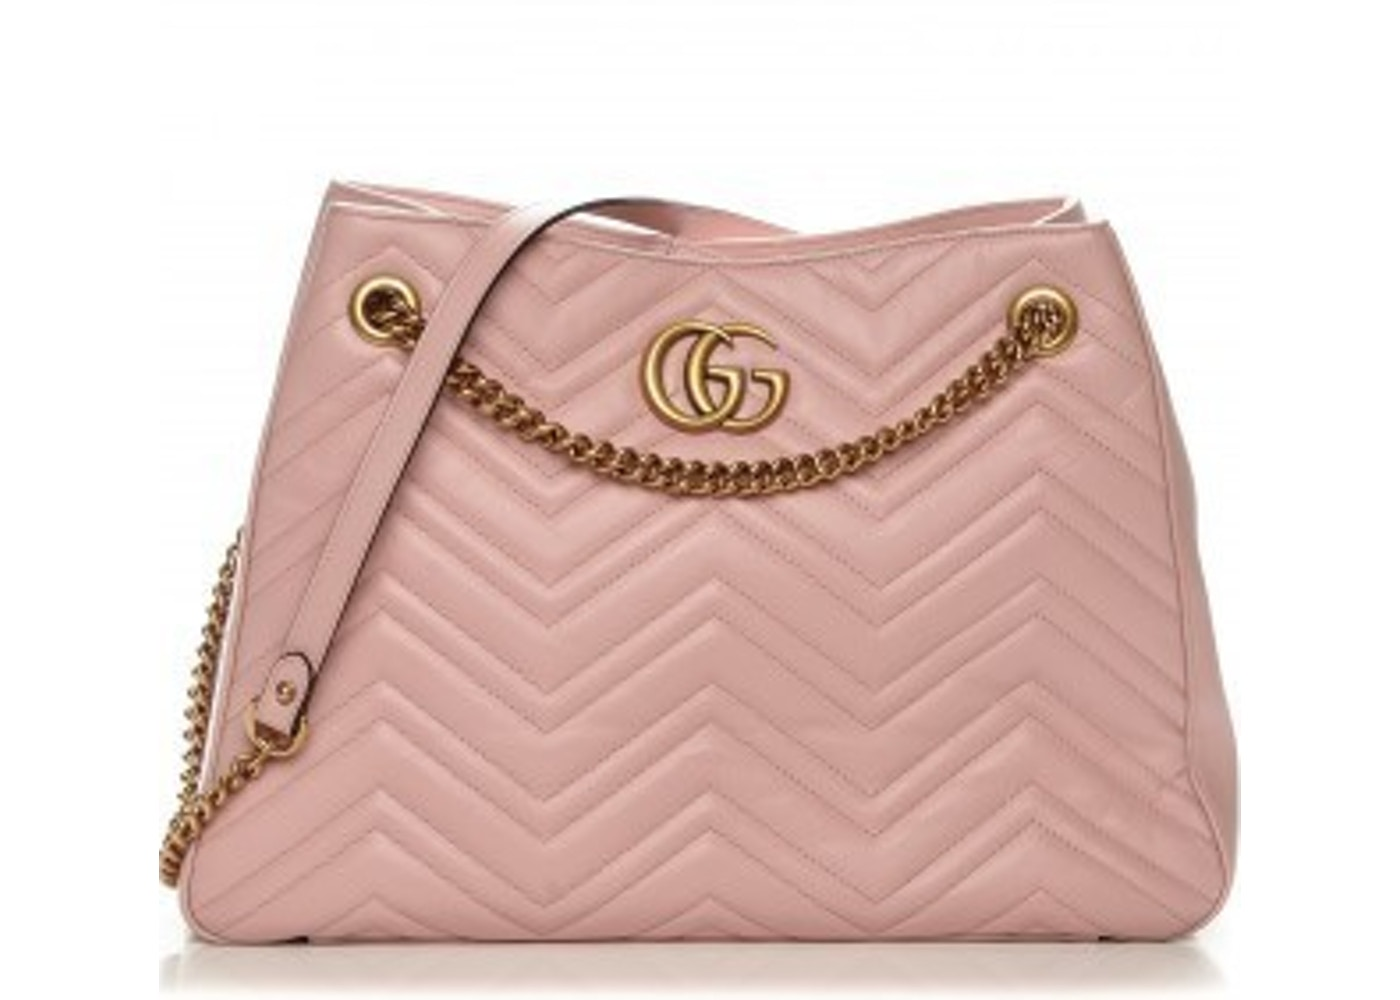 2868afe9c14427 Gucci Marmont Matelasse Shoulder Bag GG Interlocking Medium Light Pink. GG  Interlocking Medium Light Pink